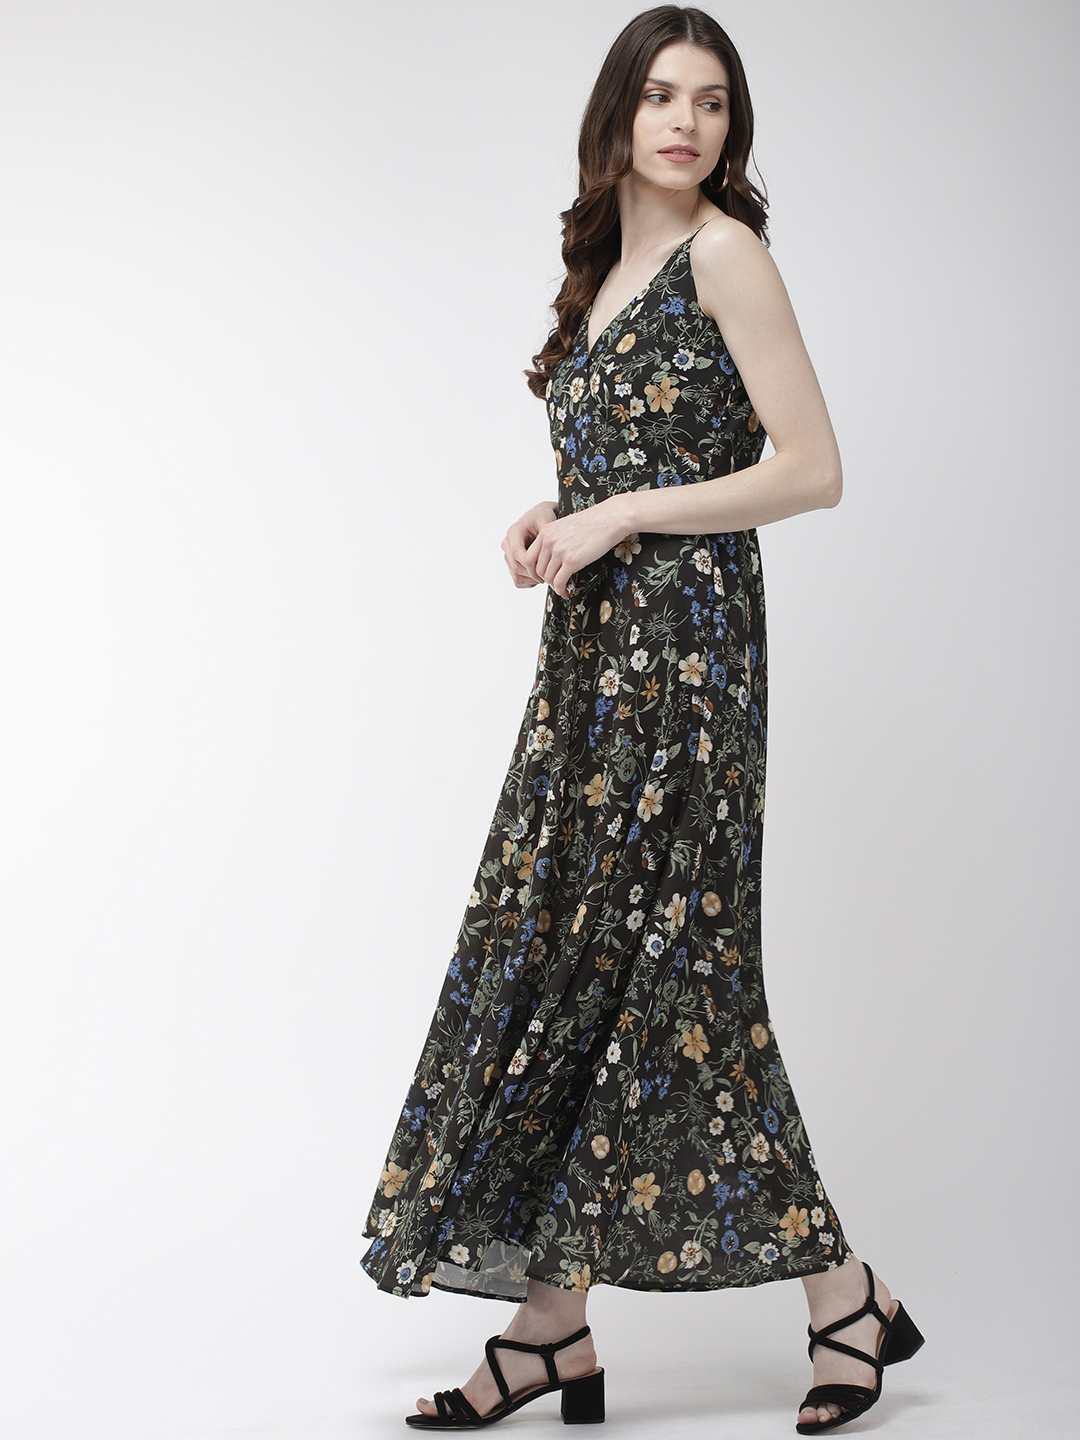 Dresses-Gardens Of Bloom Maxi Dress4